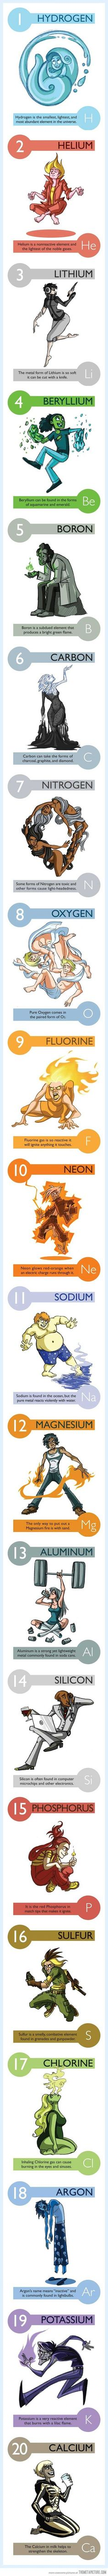 Cartoon elements make learning the periodic table fun! This is so COOL!!!